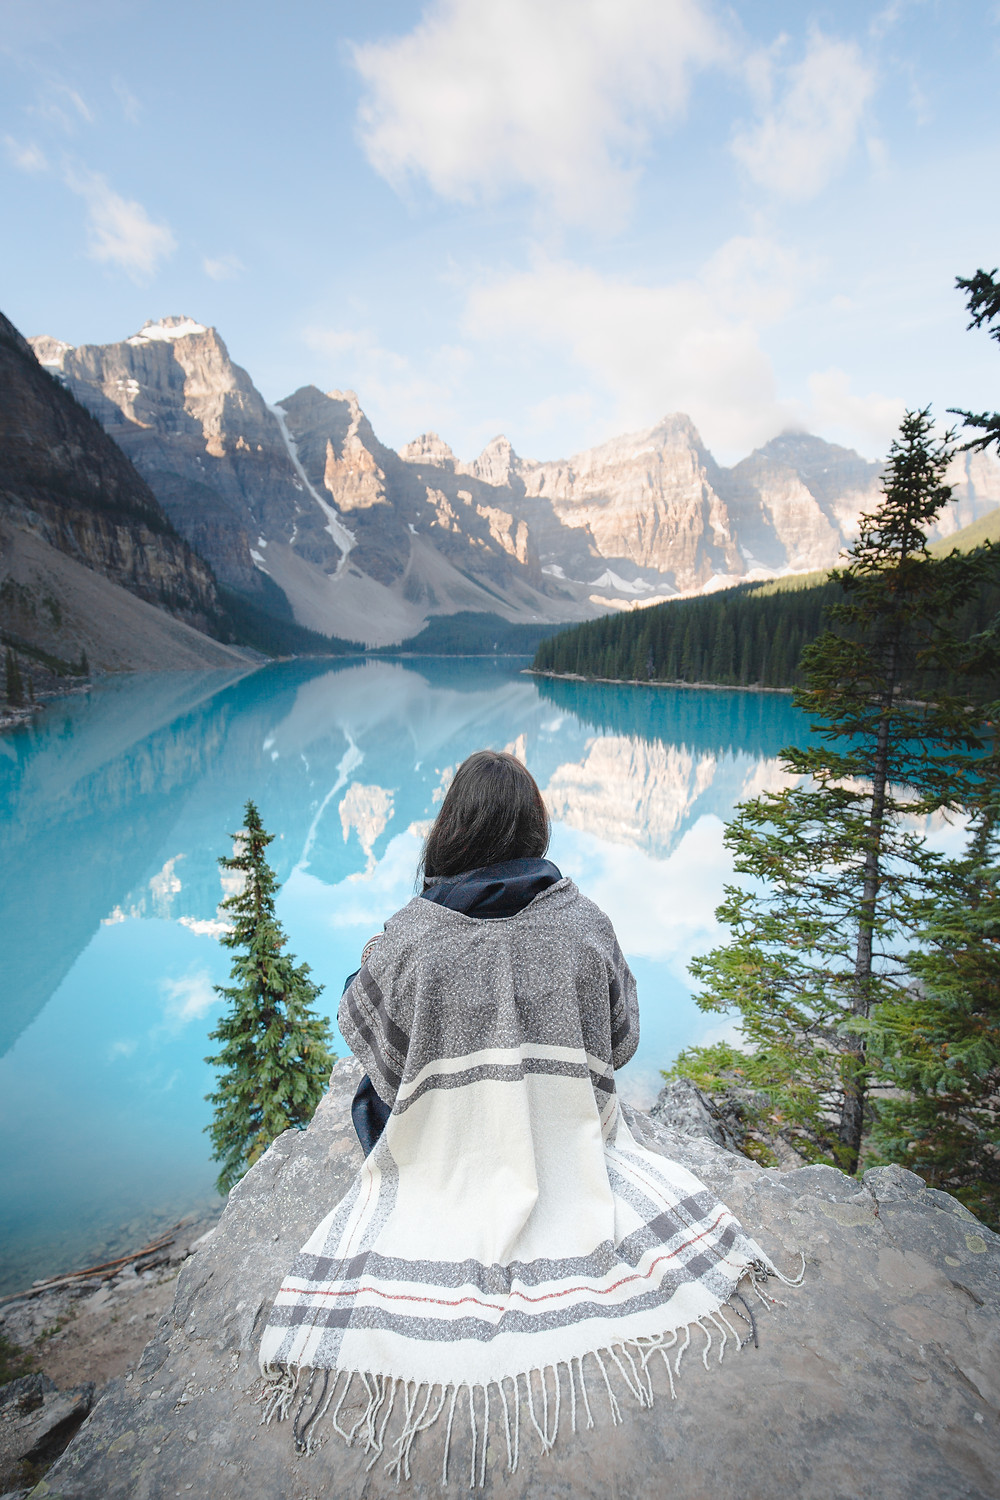 An original travel photo taken by BEN HEMMINGS MEDIA showing a woman looking out across Moraine Lake in Banff National Park